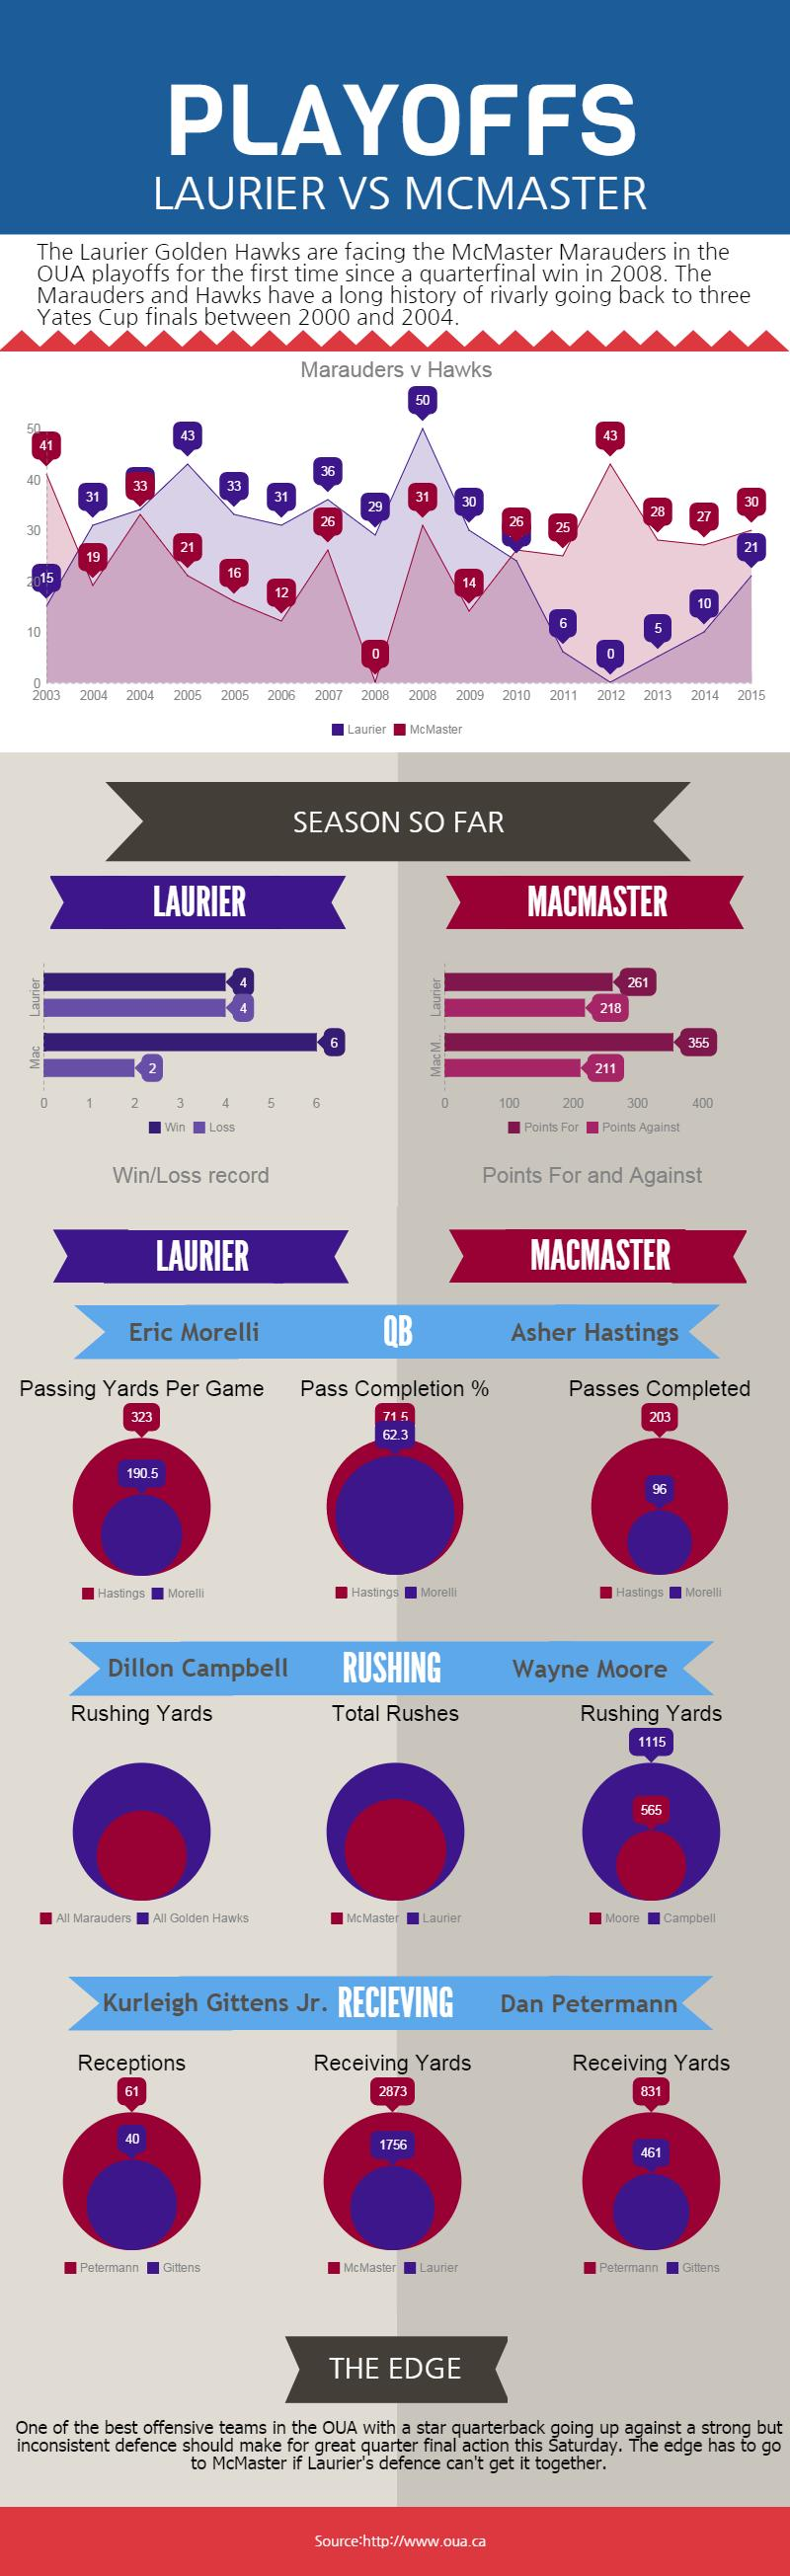 LAURIER VS MCMASTER